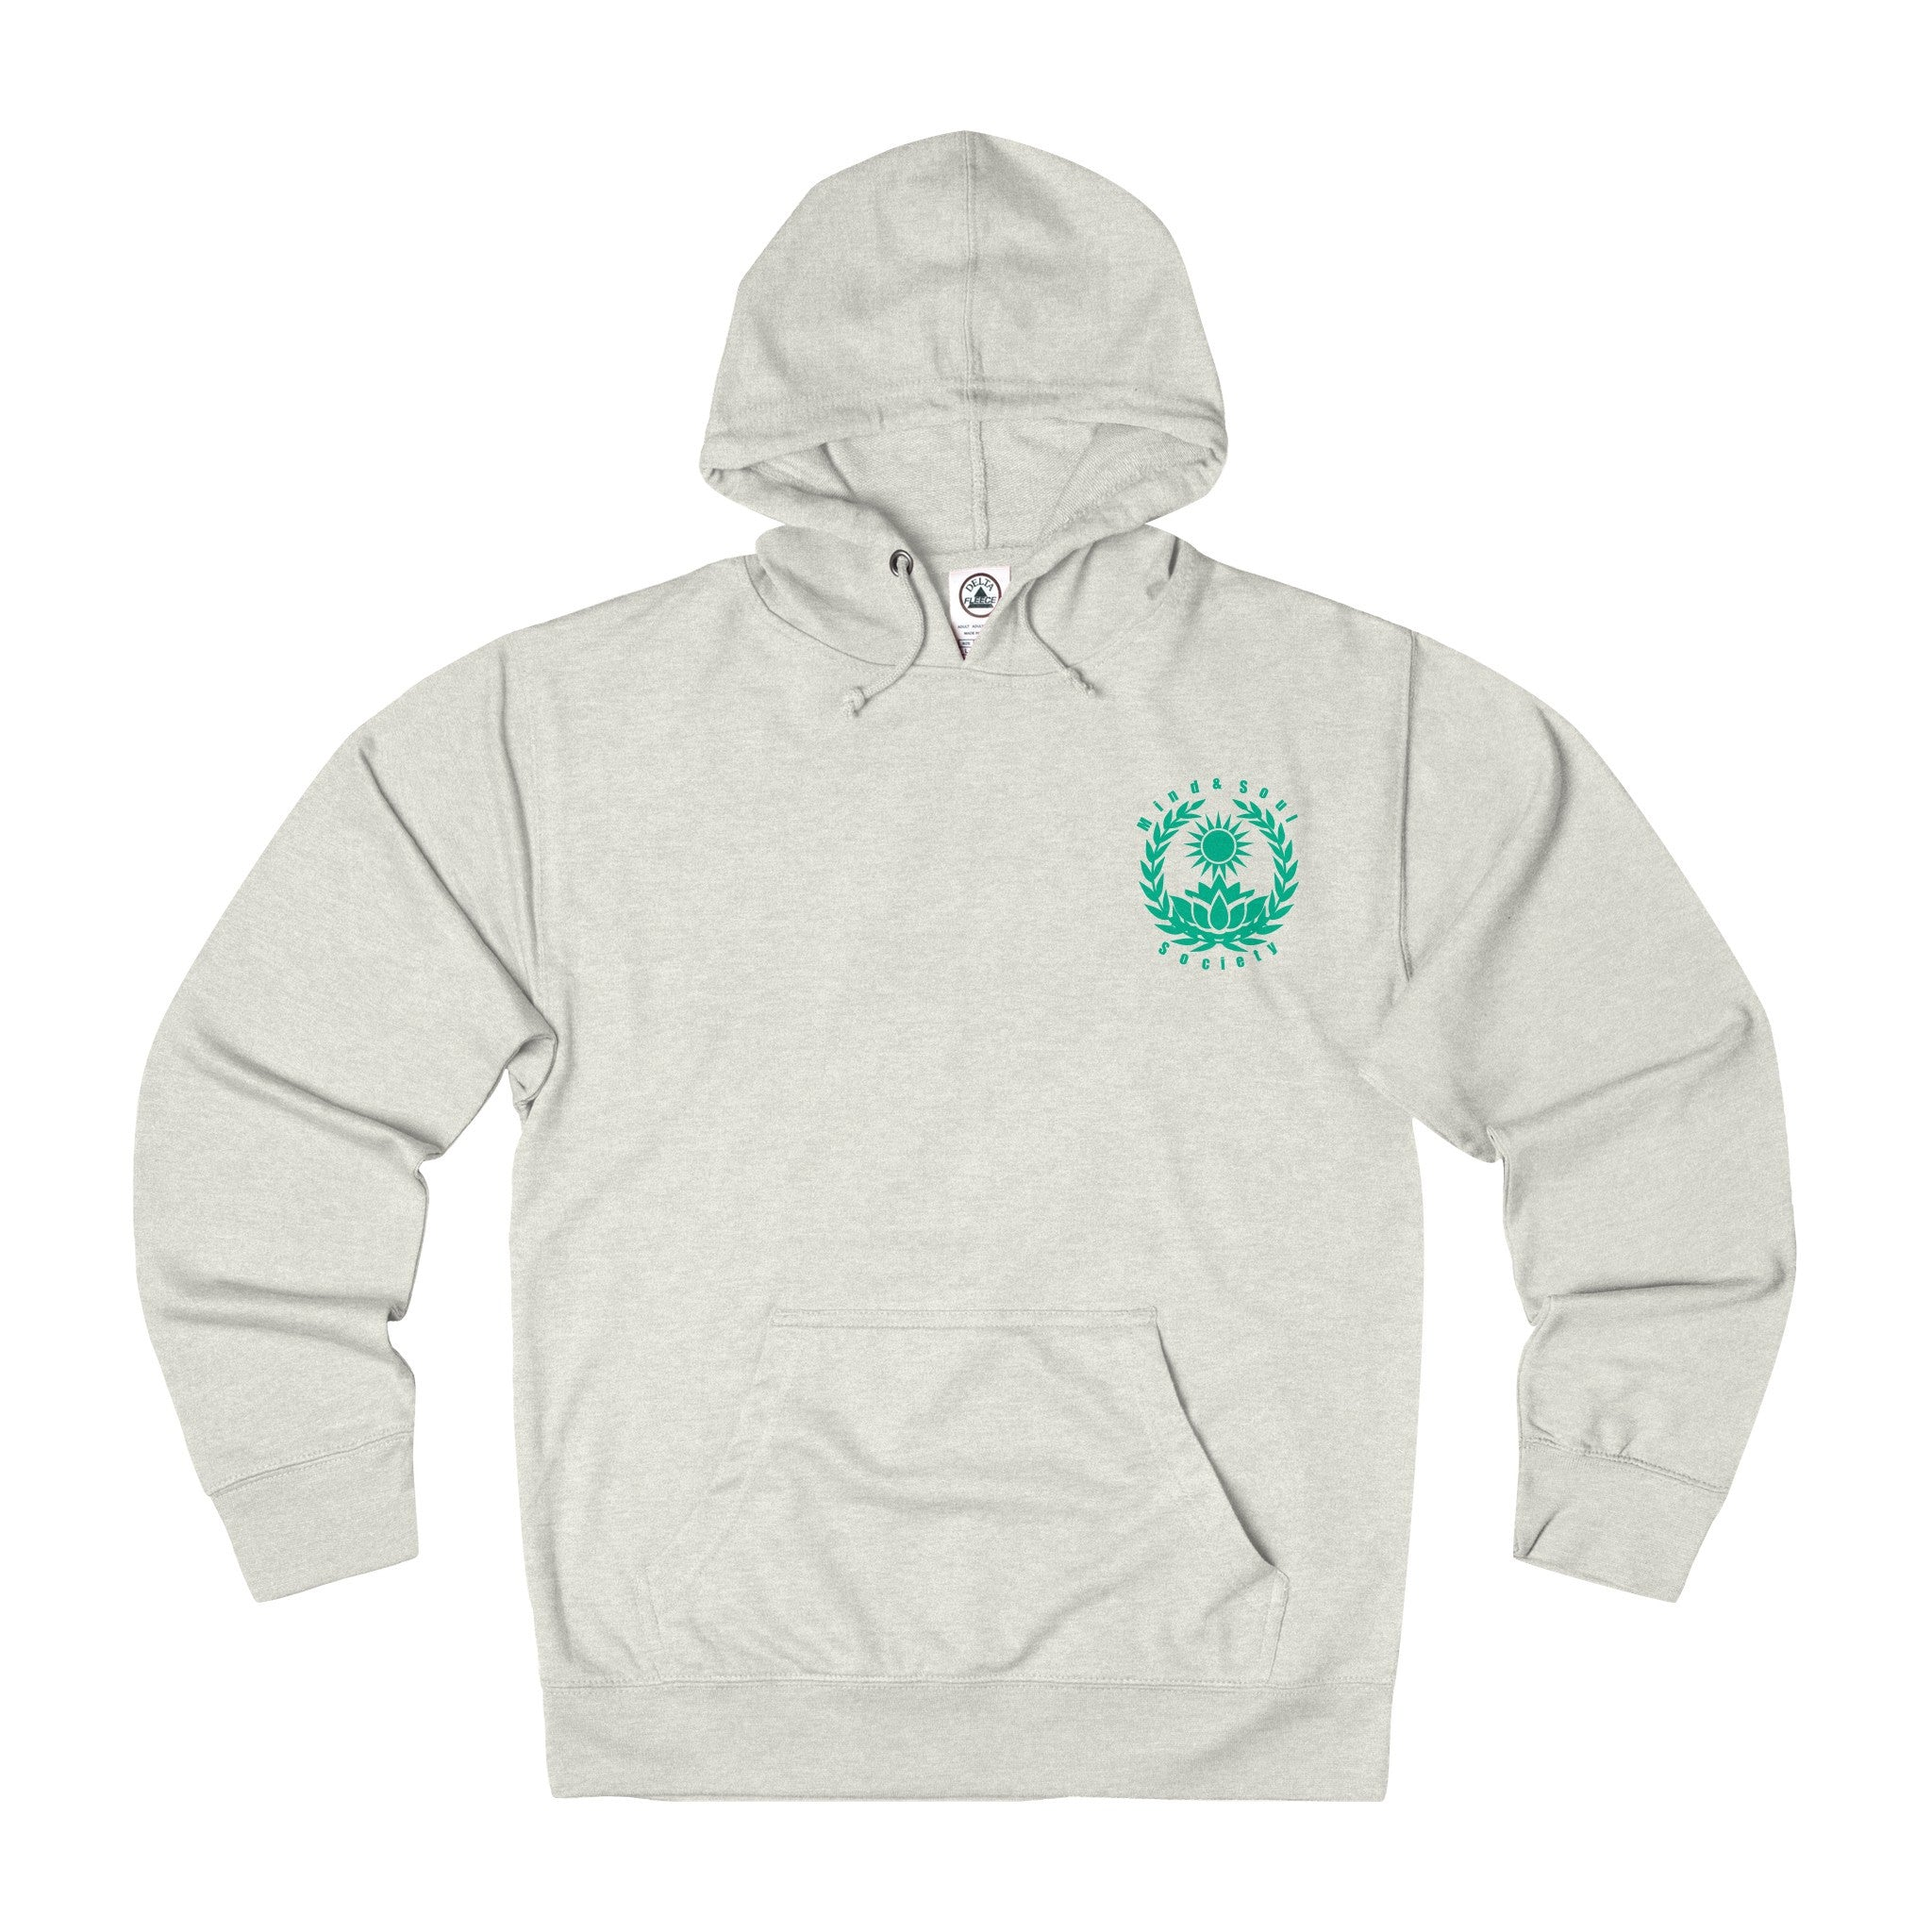 Mind&Soul Society Mind Your Mind Teal Design French Terry Hoodie (7 colors available)